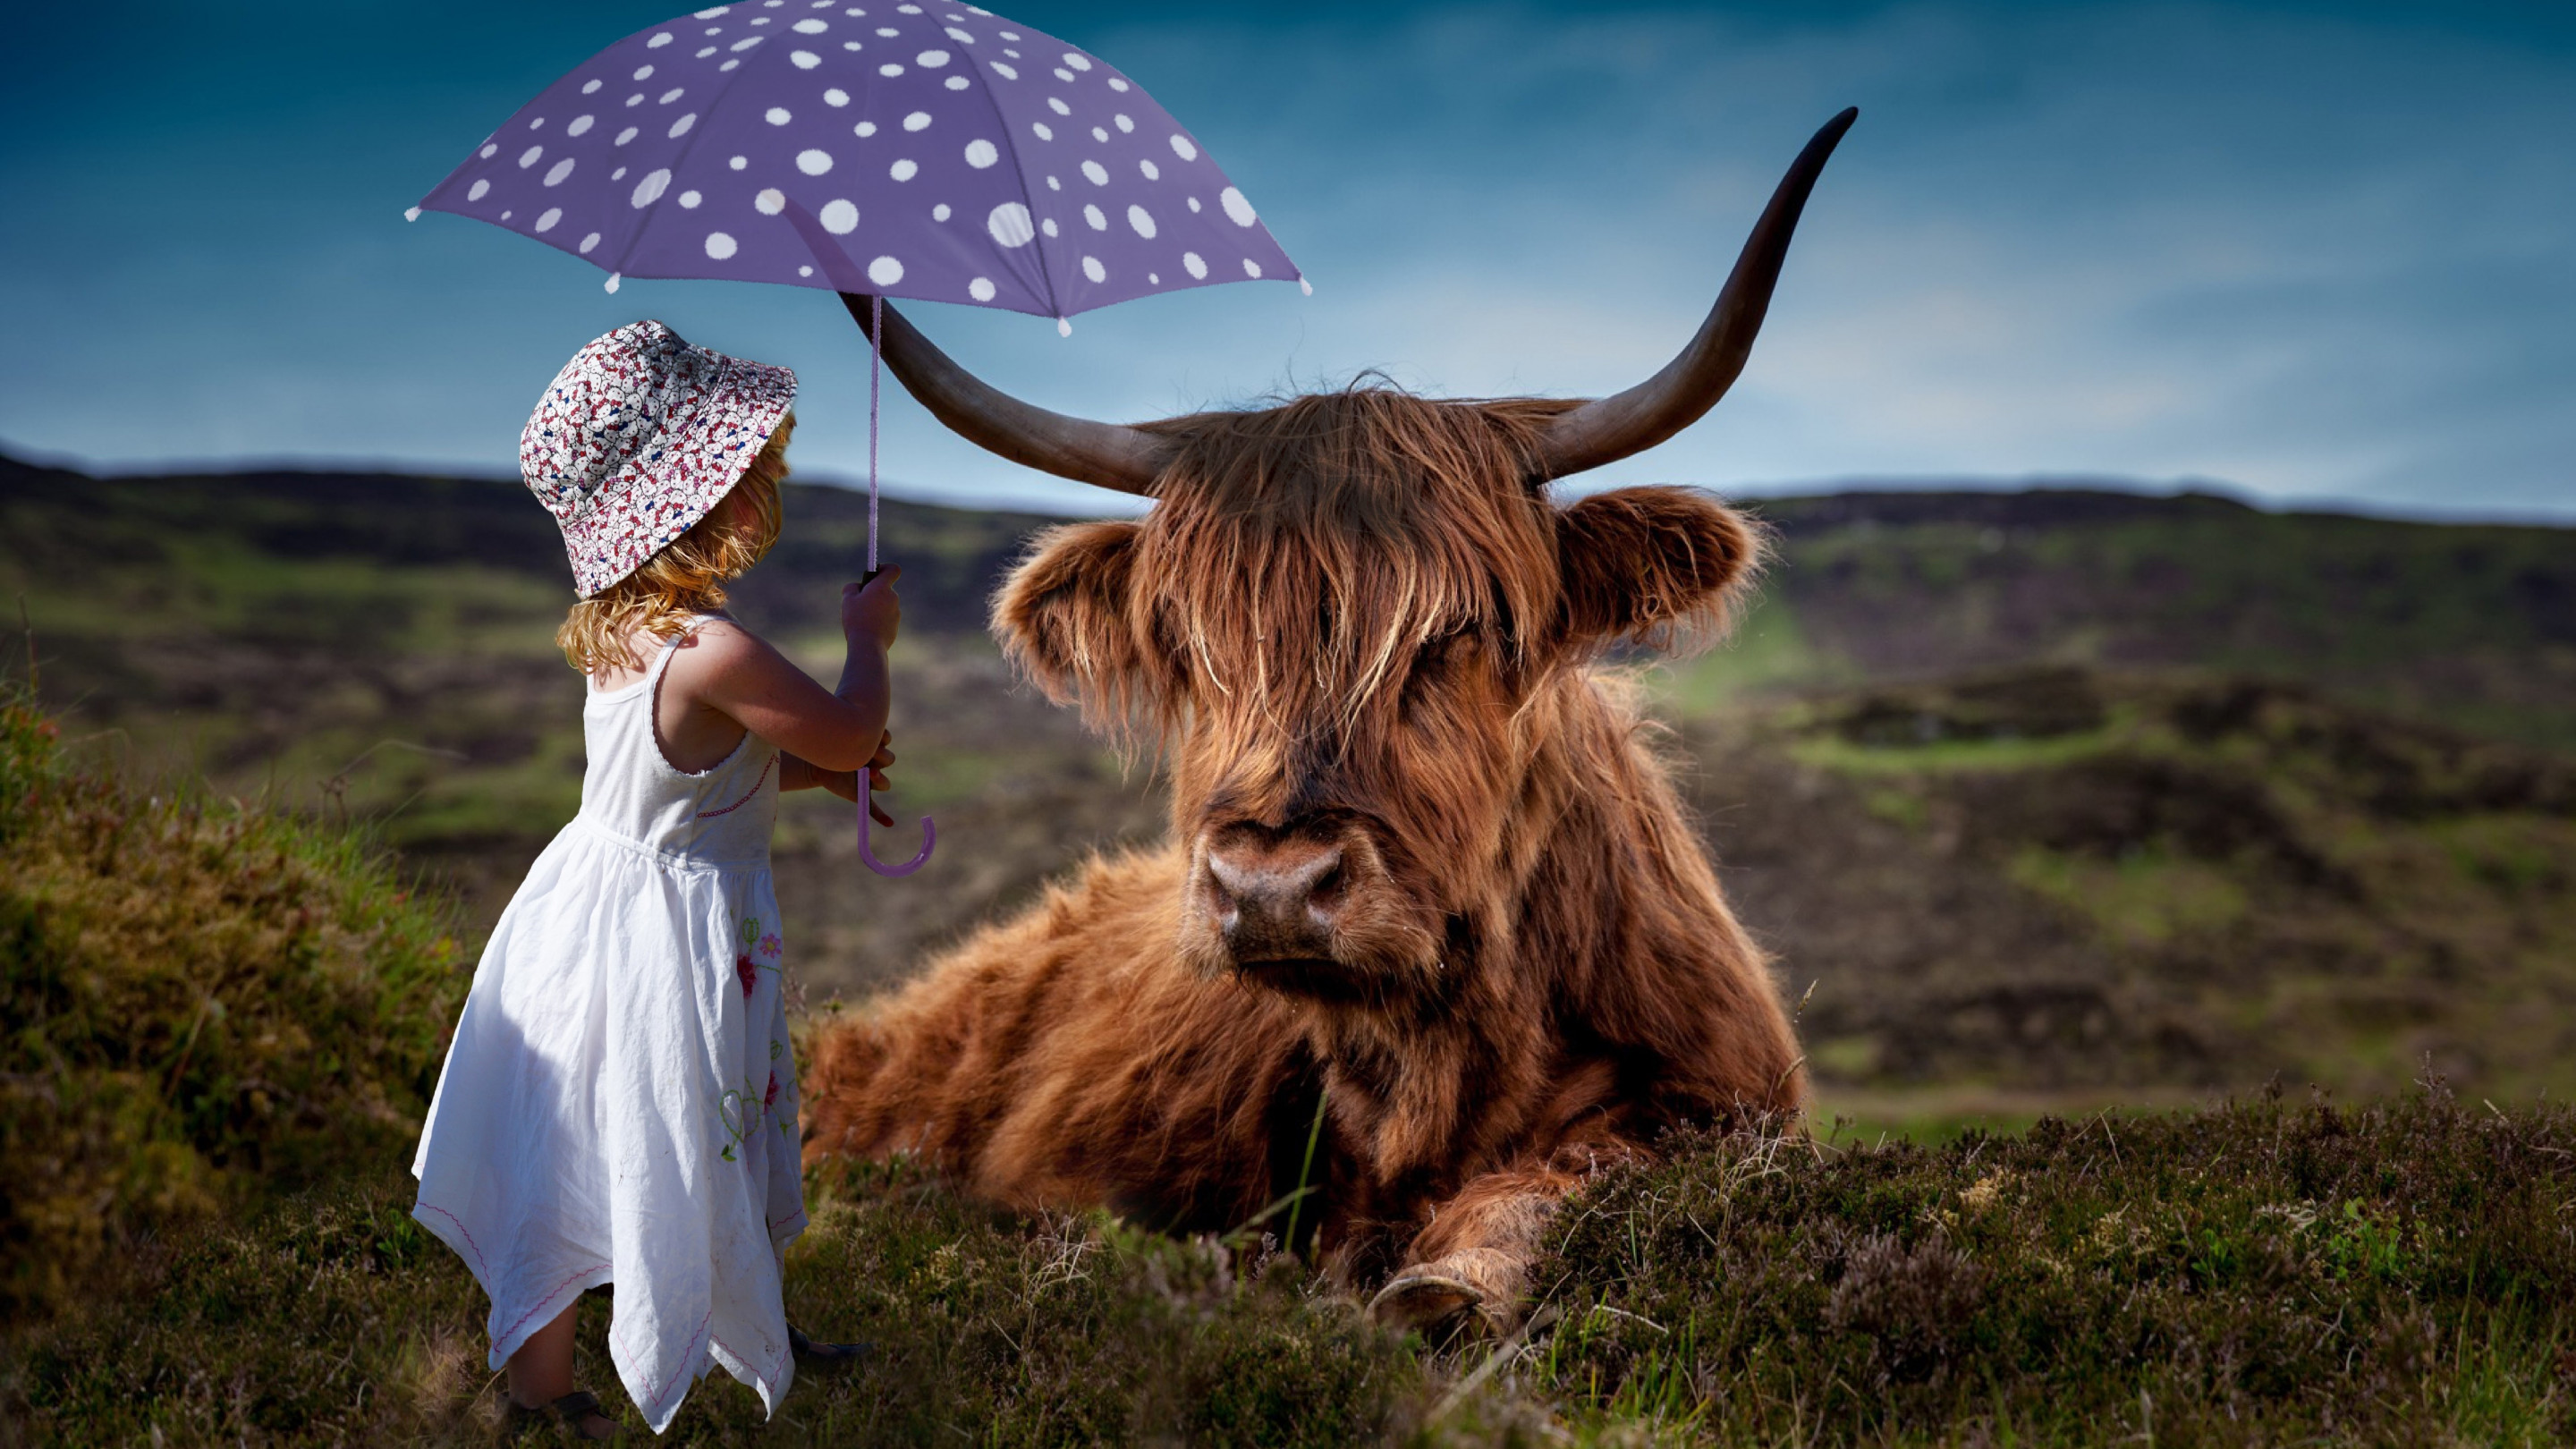 Child with the umbrella and the funny cow wallpaper 2880x1620